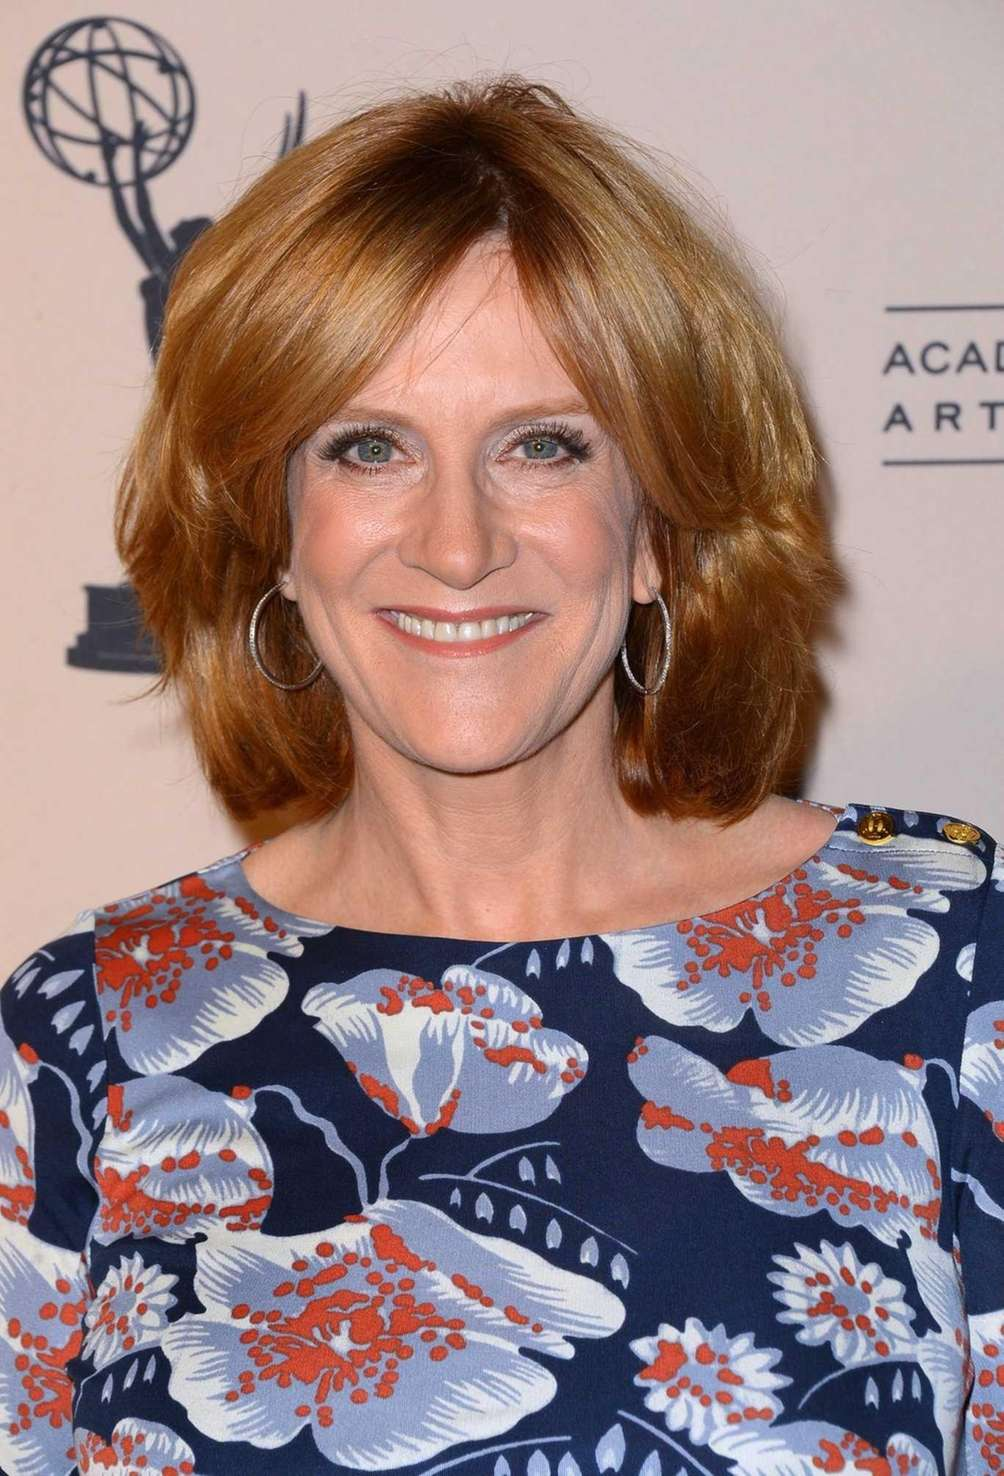 Writer and stand up comic Carol Leifer, who